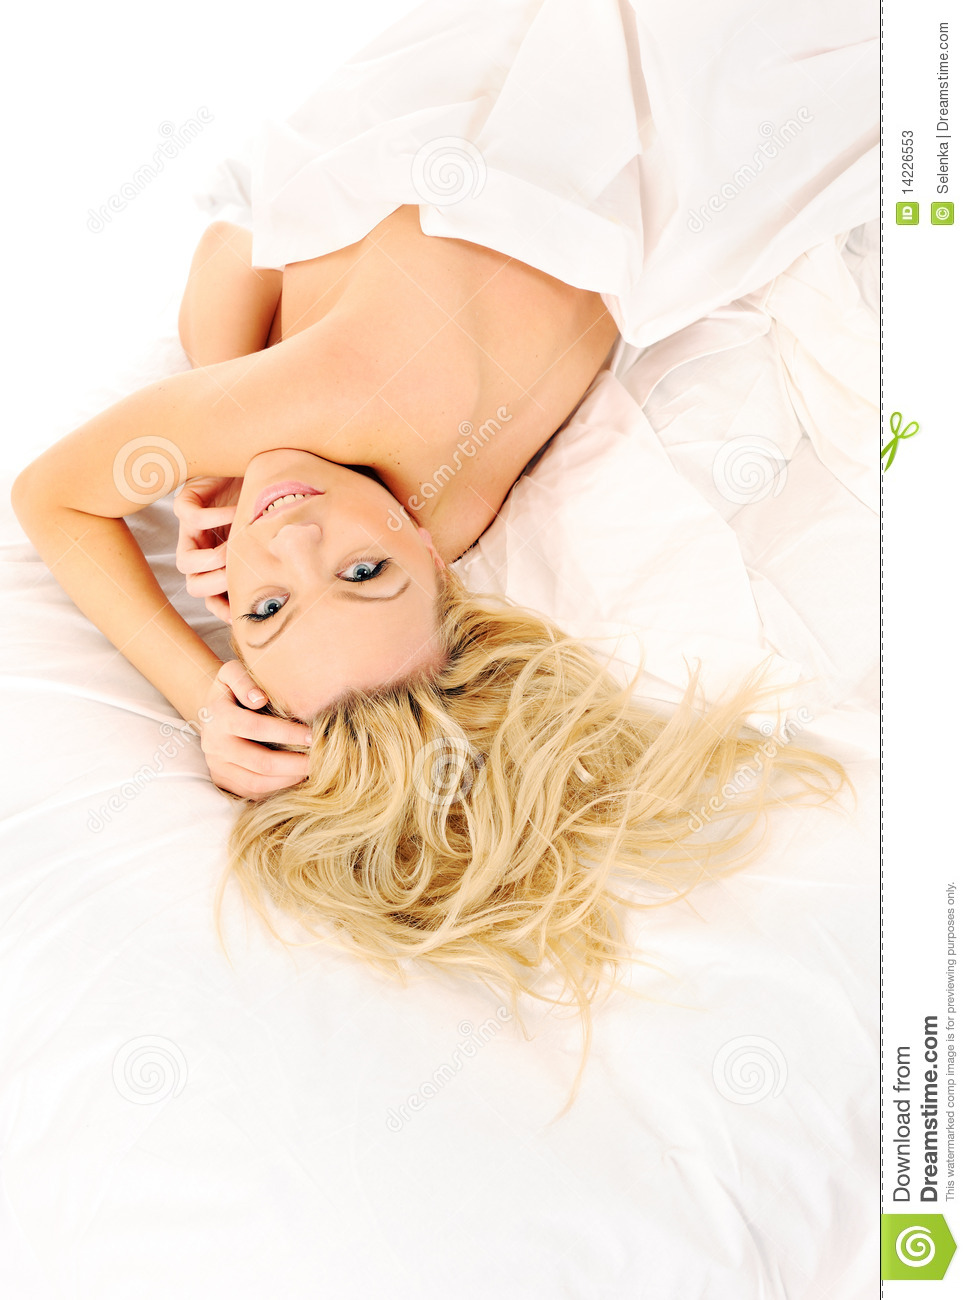 girl laying in bed stock photos image 14226553. Black Bedroom Furniture Sets. Home Design Ideas